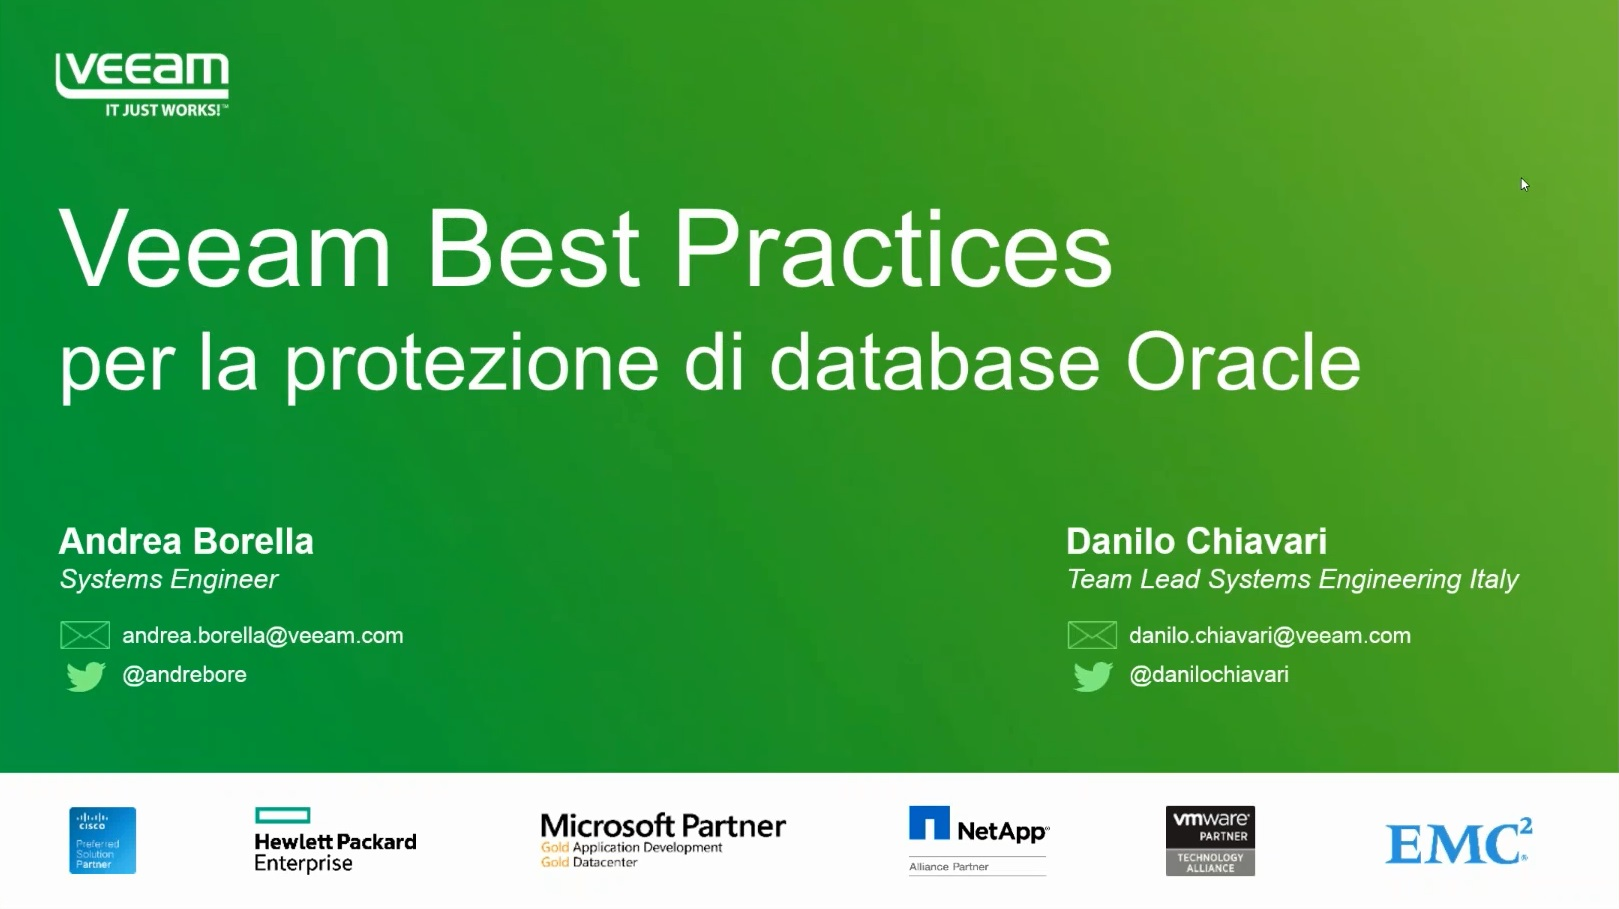 Veeam Best practices per la protezione di database Oracle